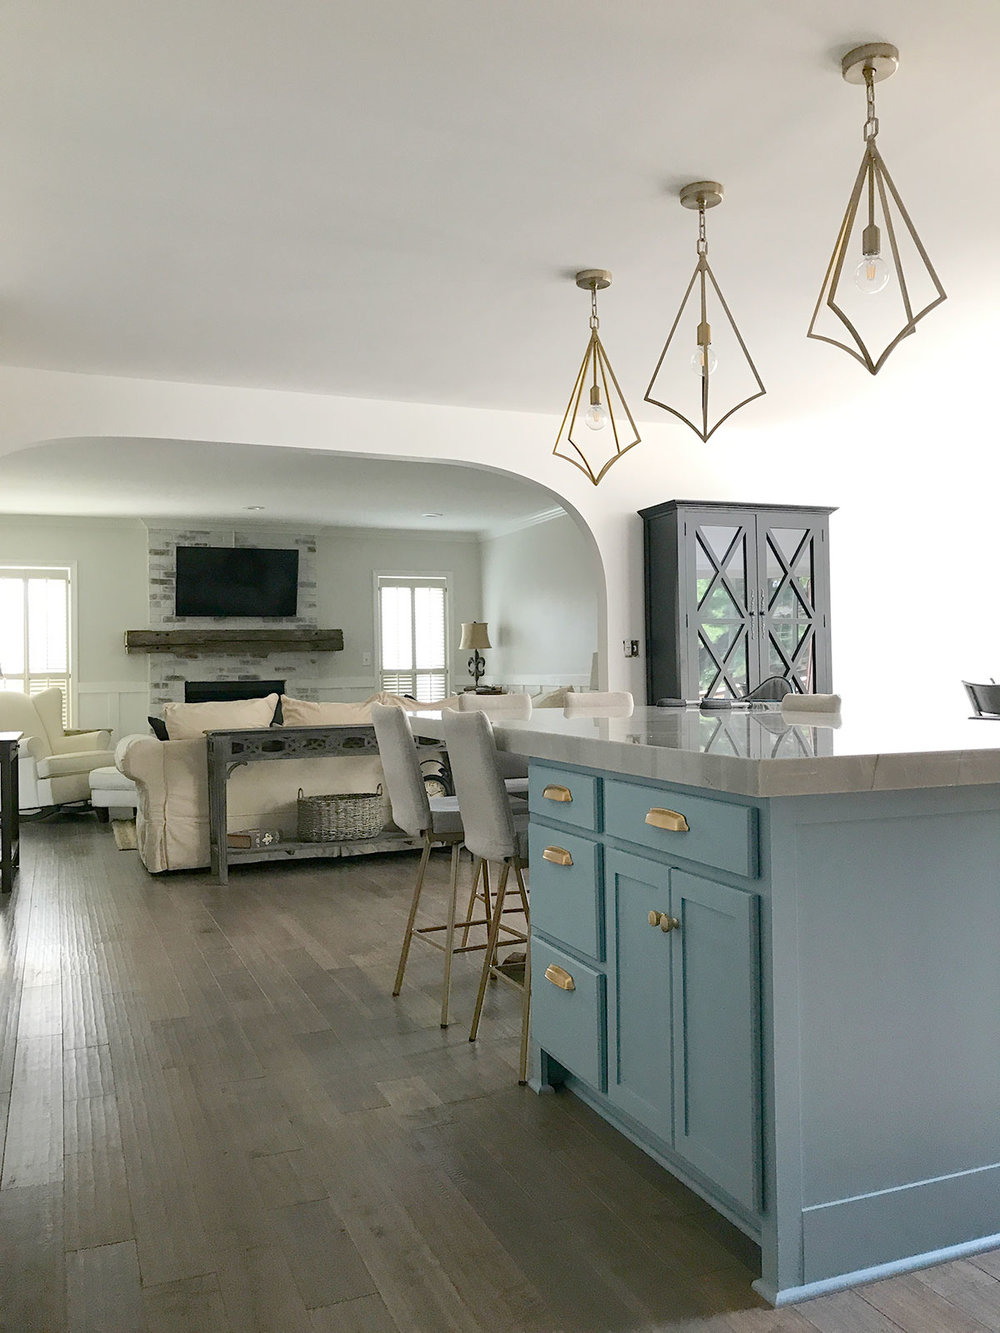 Complete Home Transformation - A Childhood Home Redux